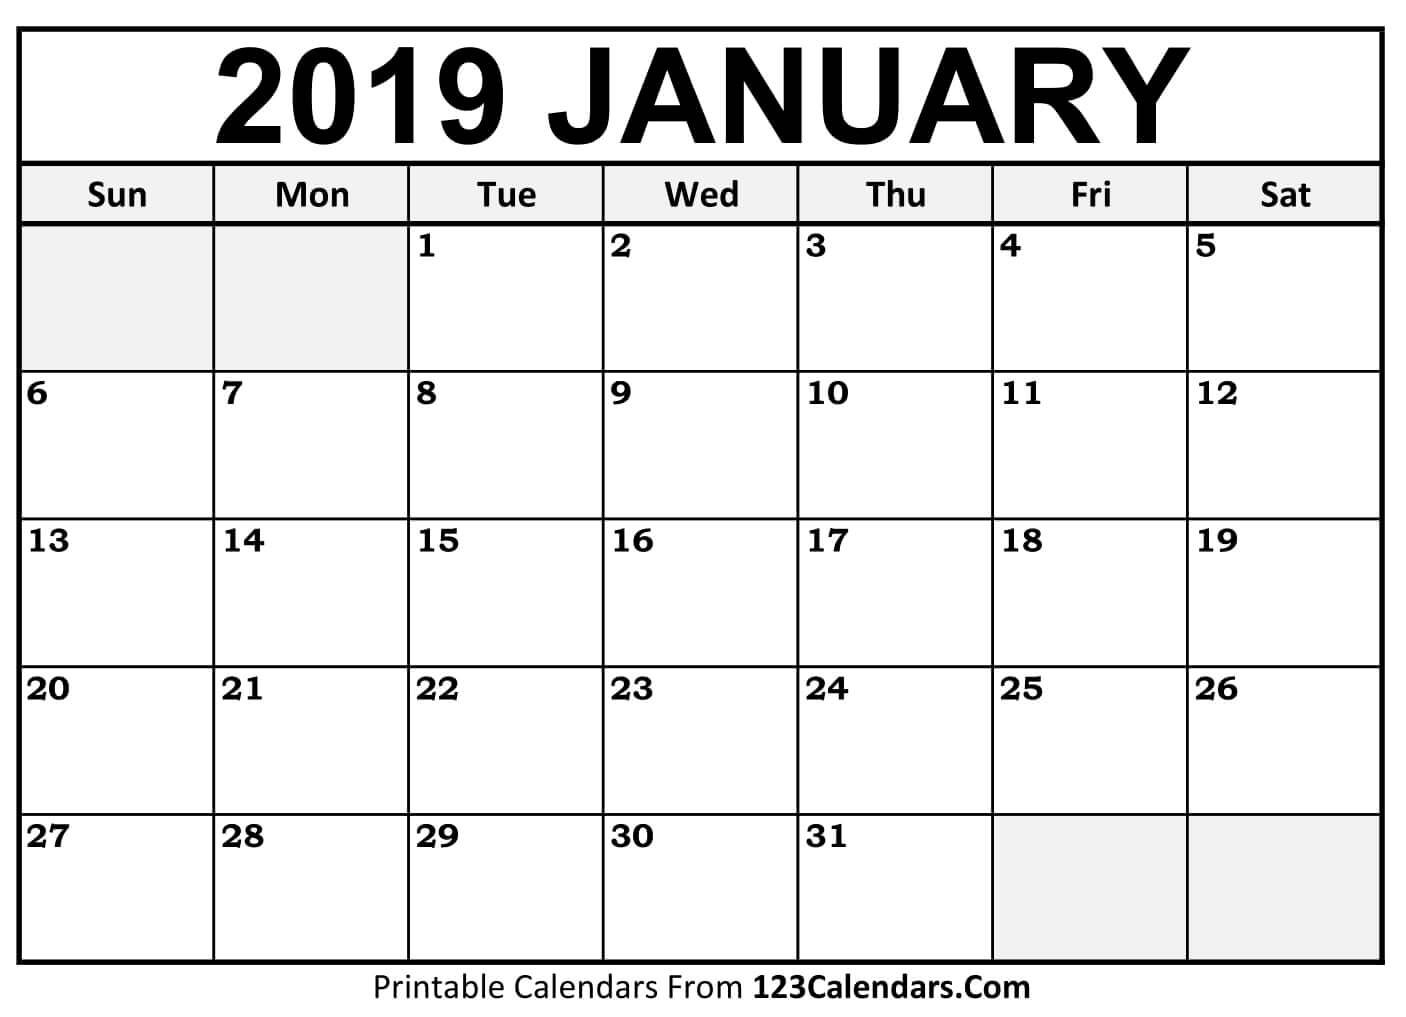 Printable January 2019 Calendar Templates – 123Calendars Calendar 2019 Jan